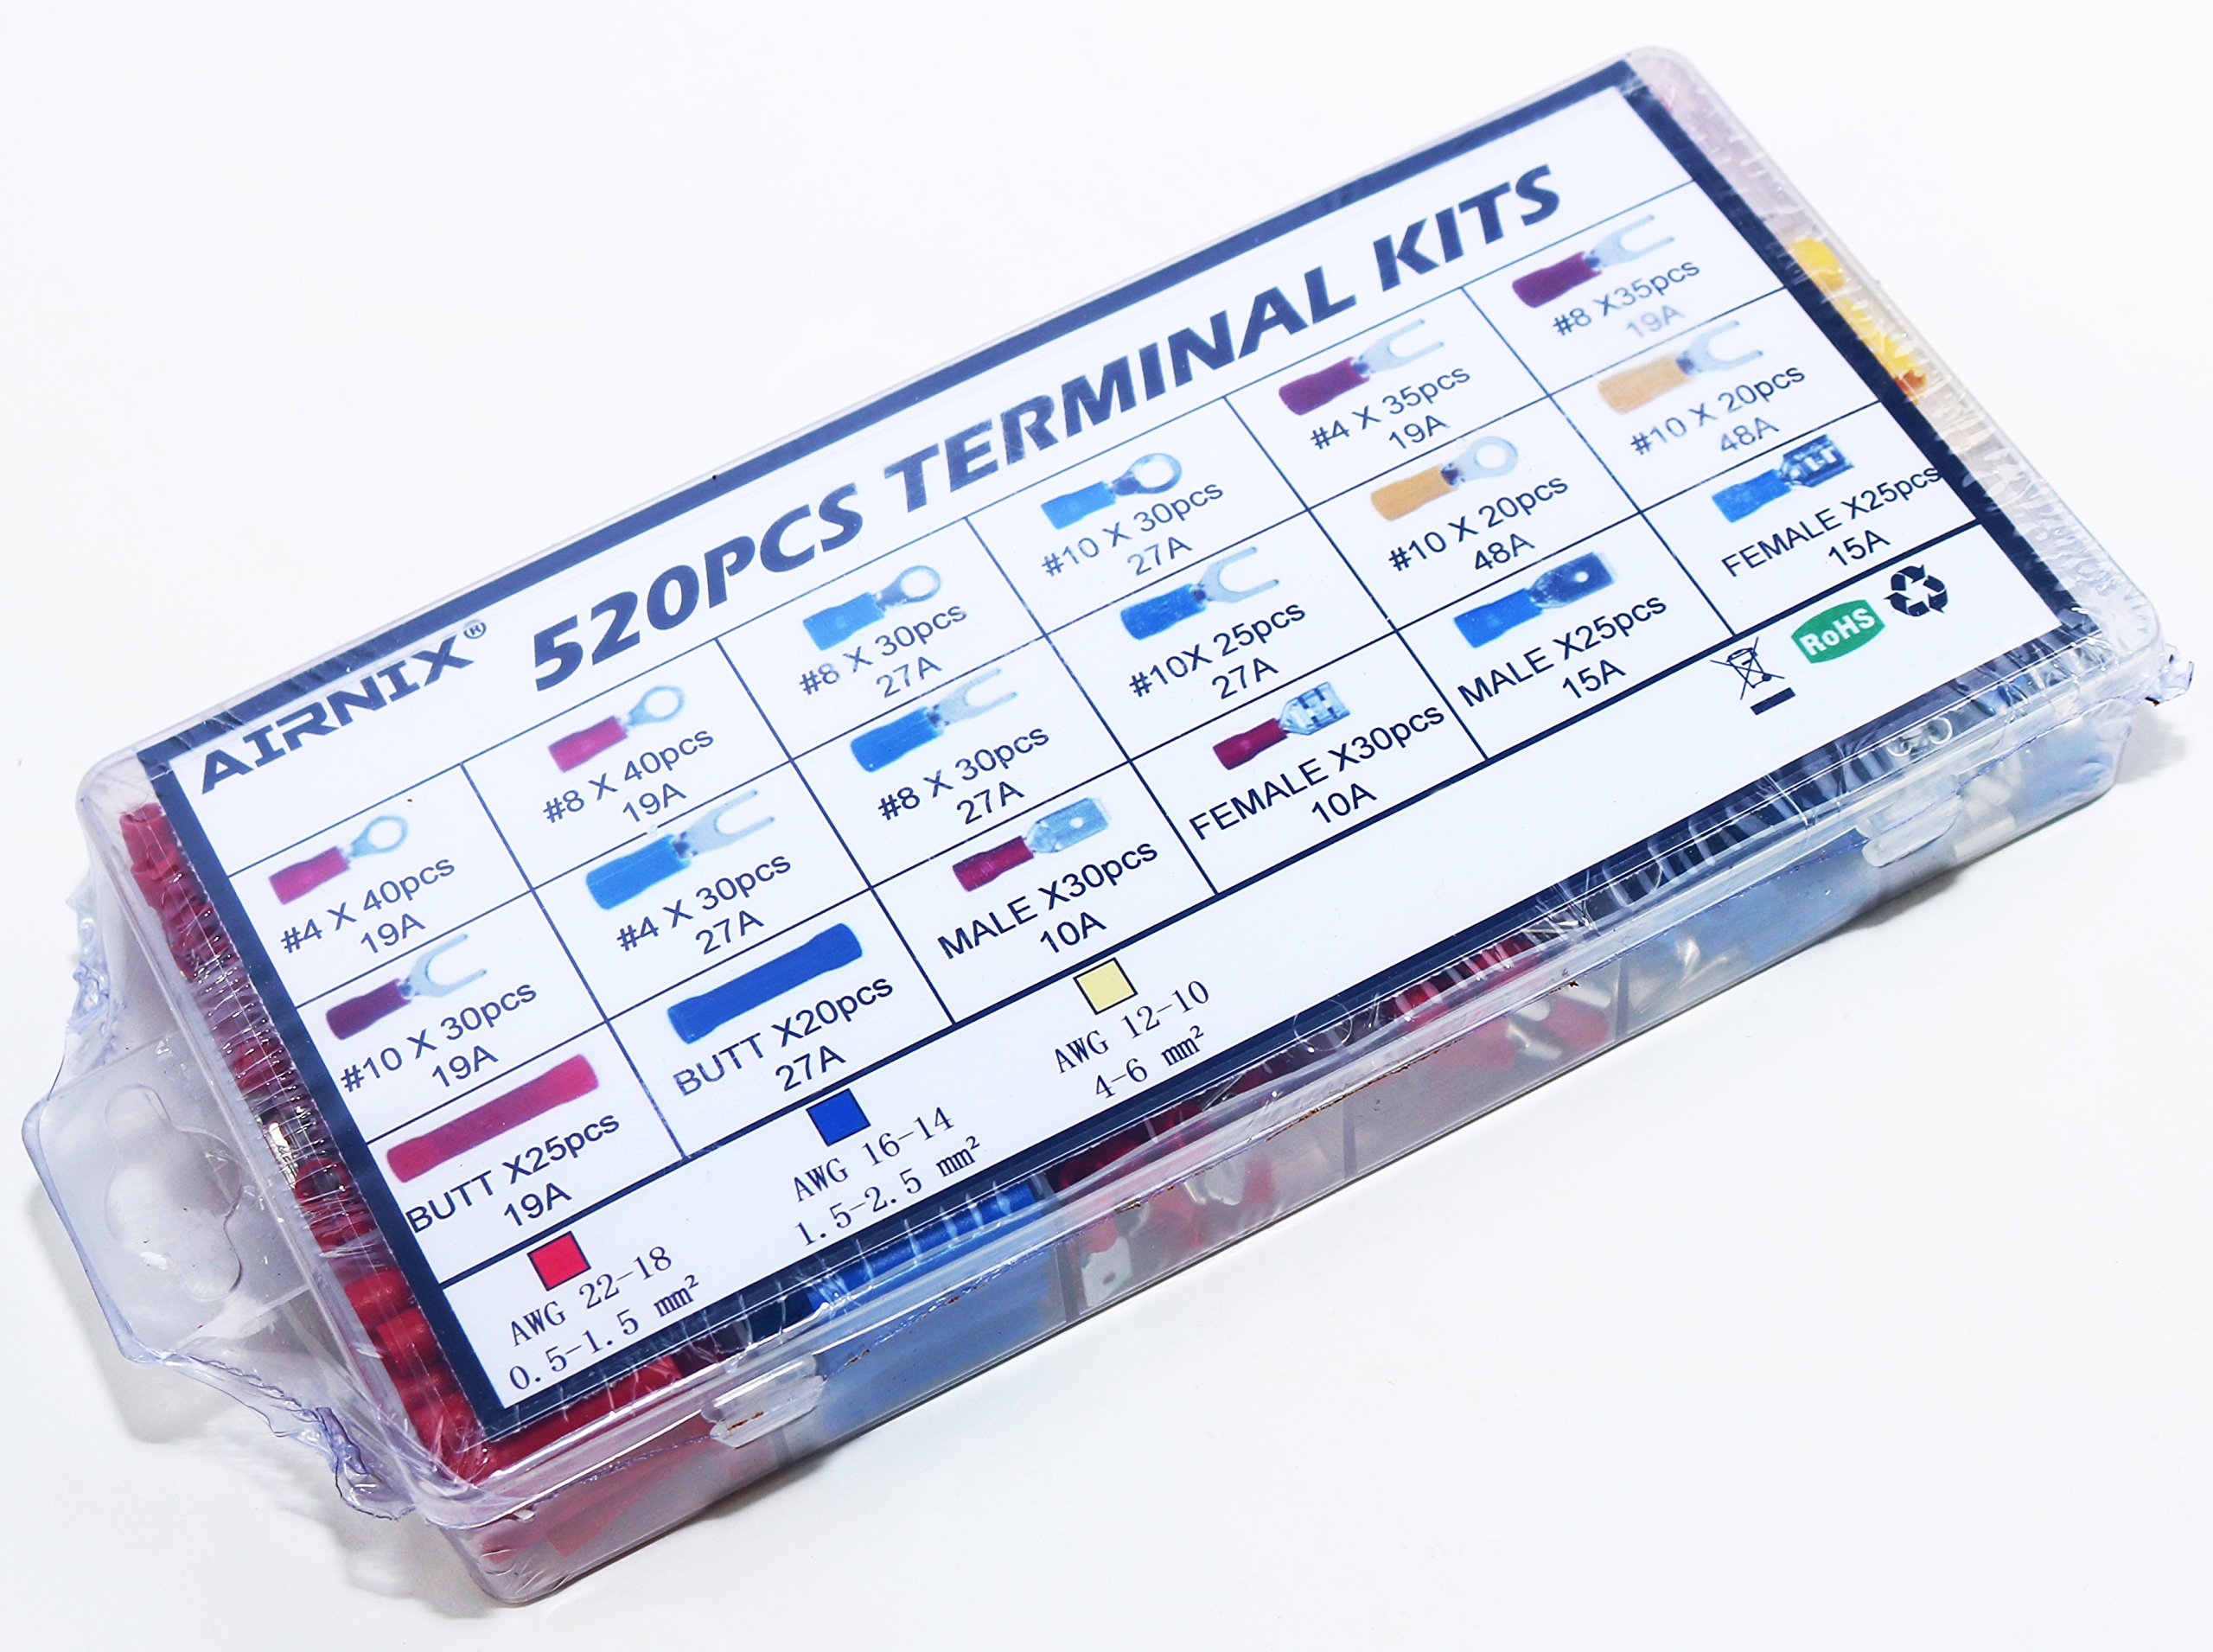 AIRNIX 520 Piece Electrical Terminal Assortment; Spades ''Forks'' Rings Male Female Quick Disconnects Butt Splice AWG Red 22-18, Blue 16-14, Yellow 12-10 by AIRNIX (Image #2)